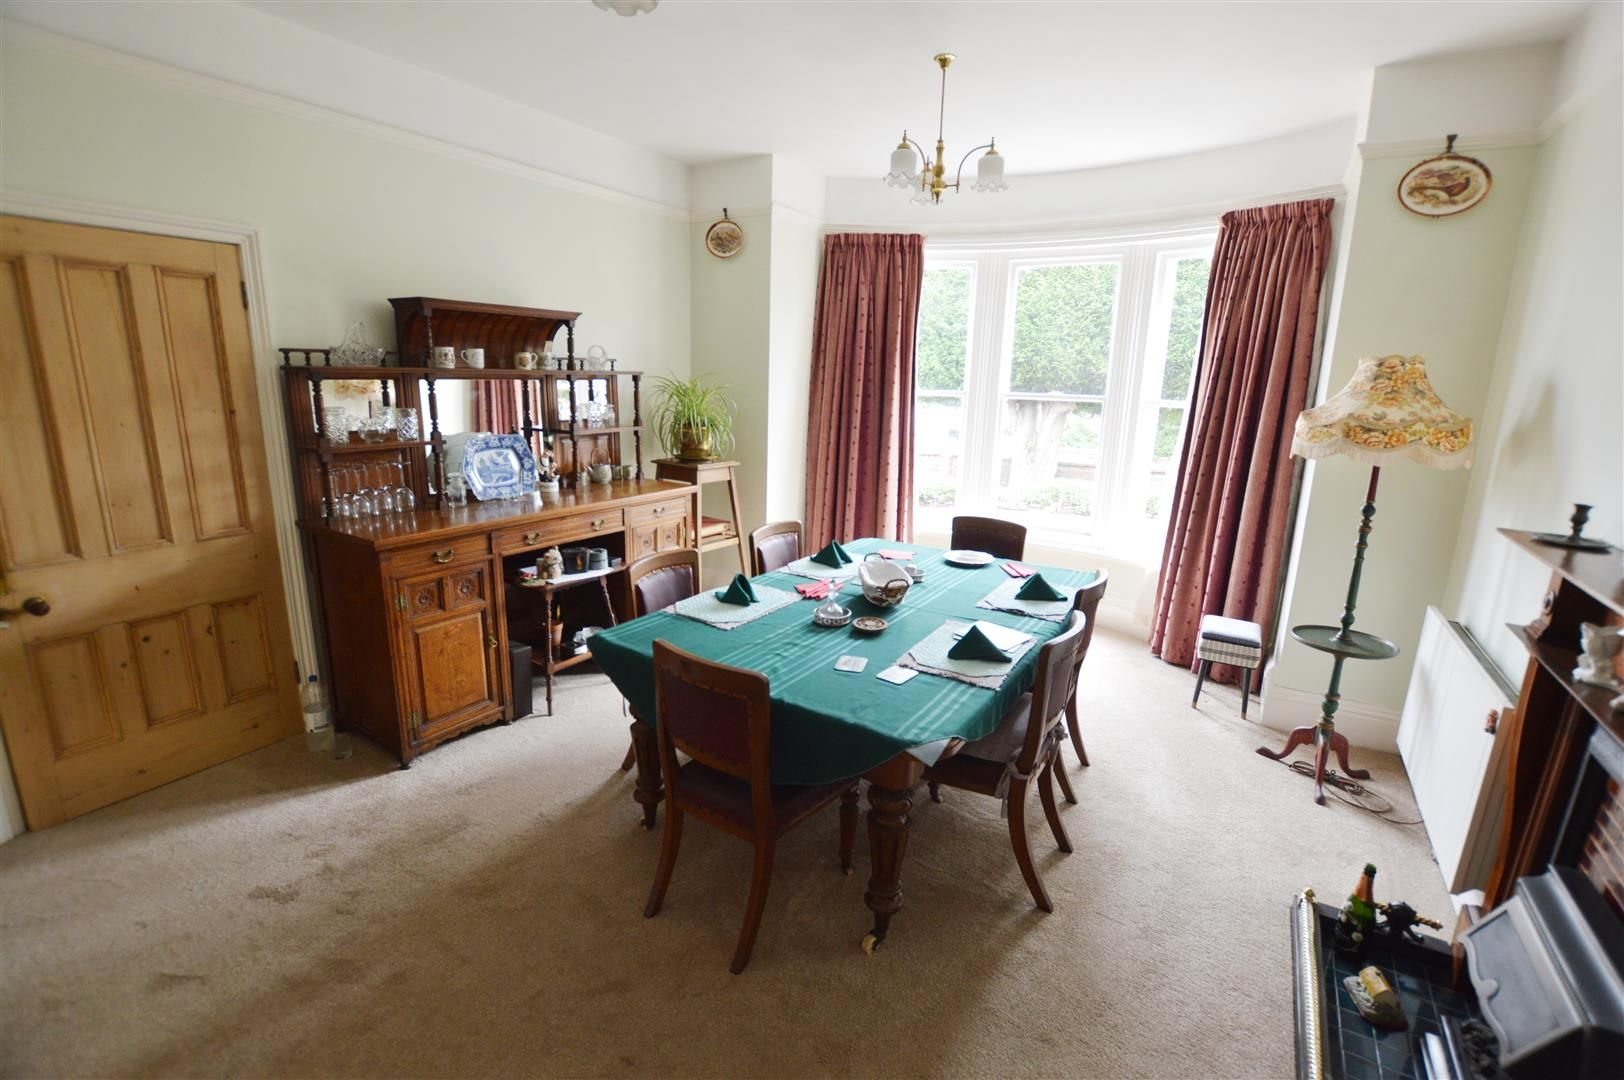 6 bed detached for sale in Leominster 3